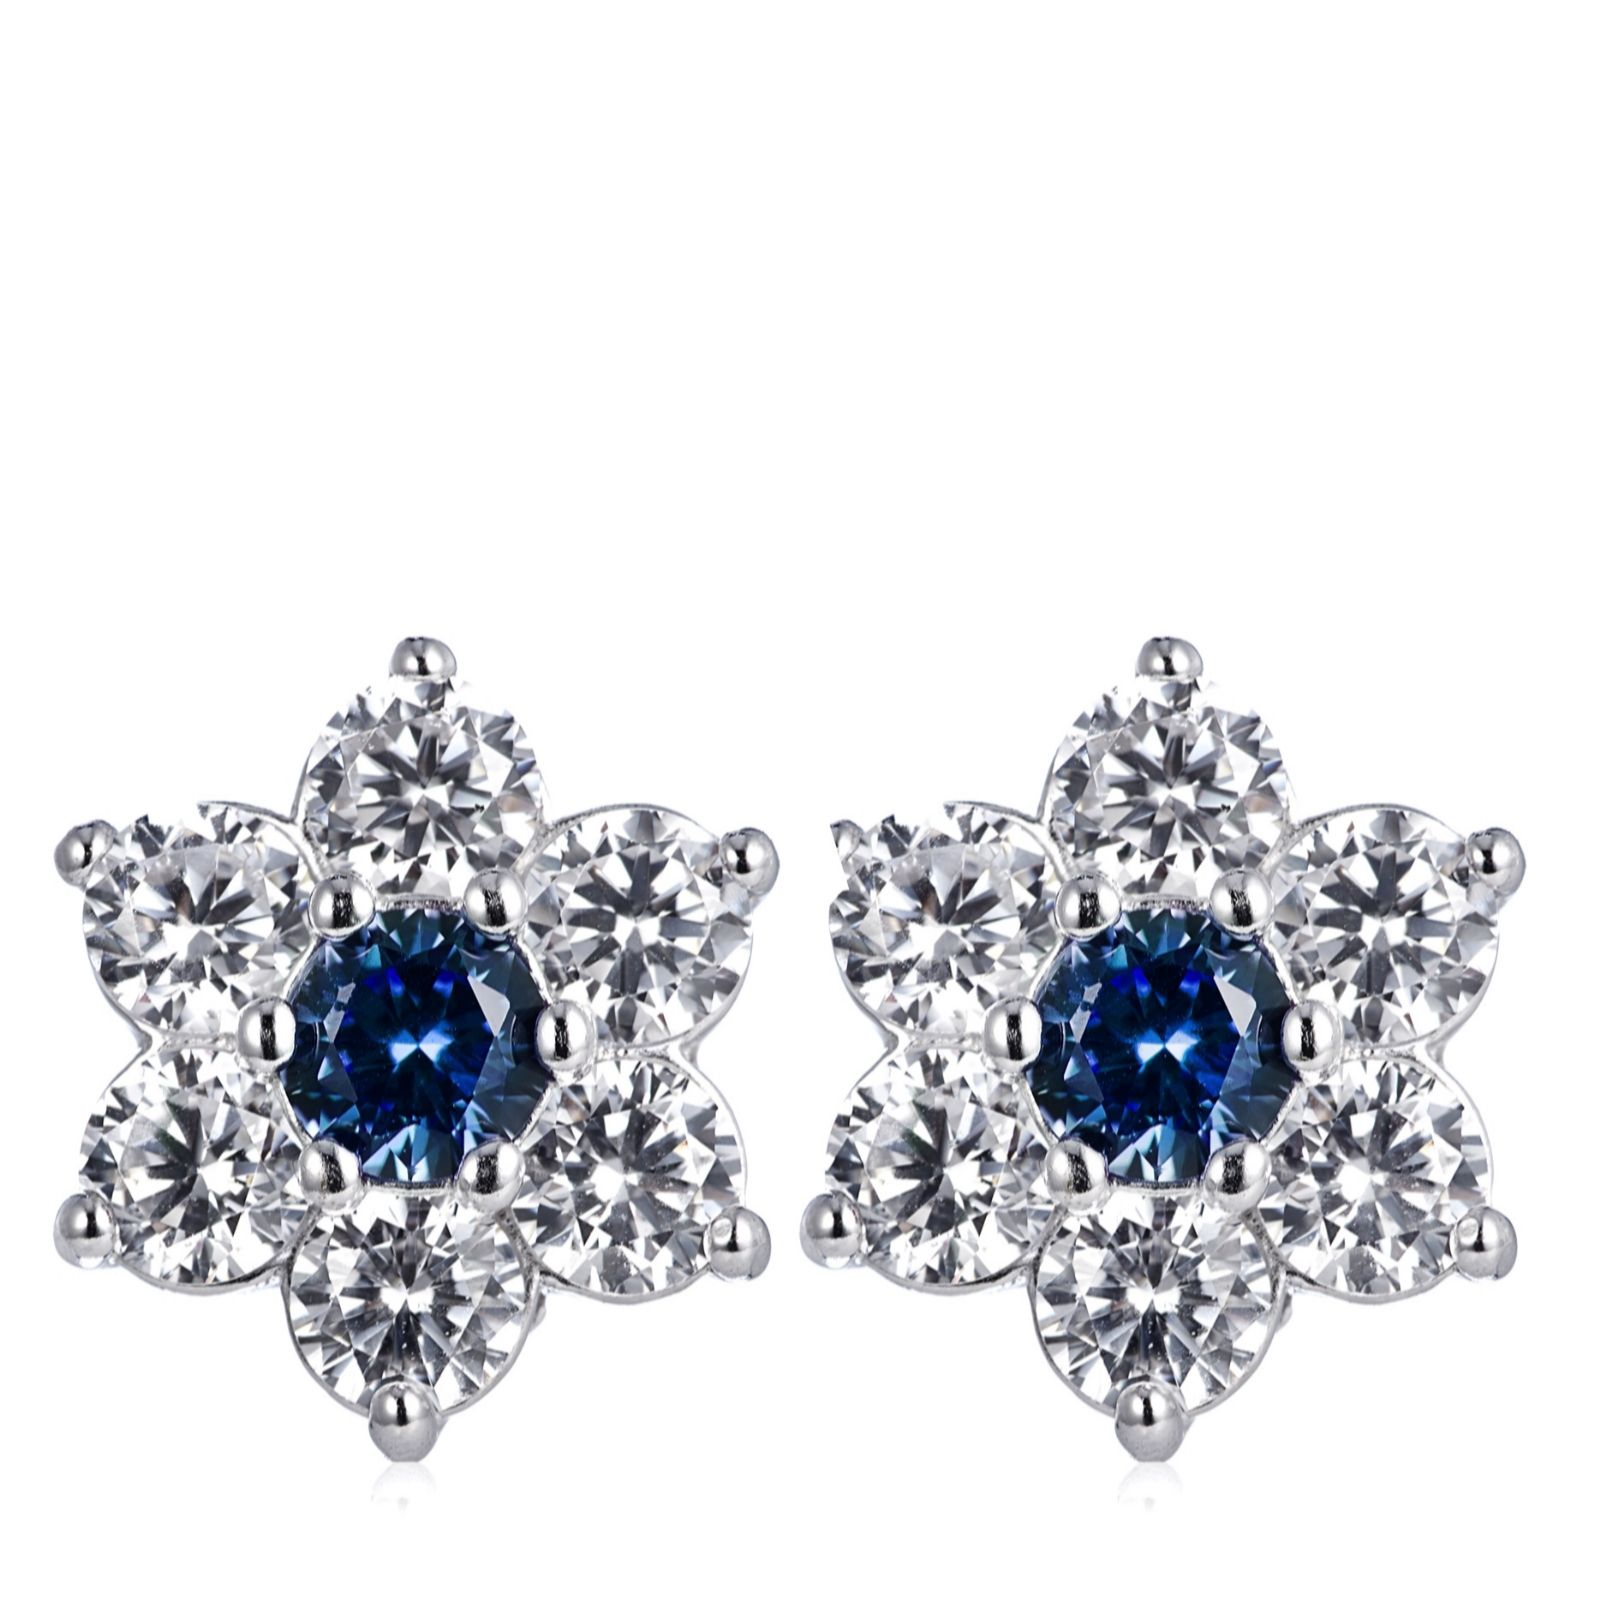 19a4f9b01 Diamonique 1.5ct tw Simulated Gemstone Cluster Stud Earrings Sterling Silver  - QVC UK